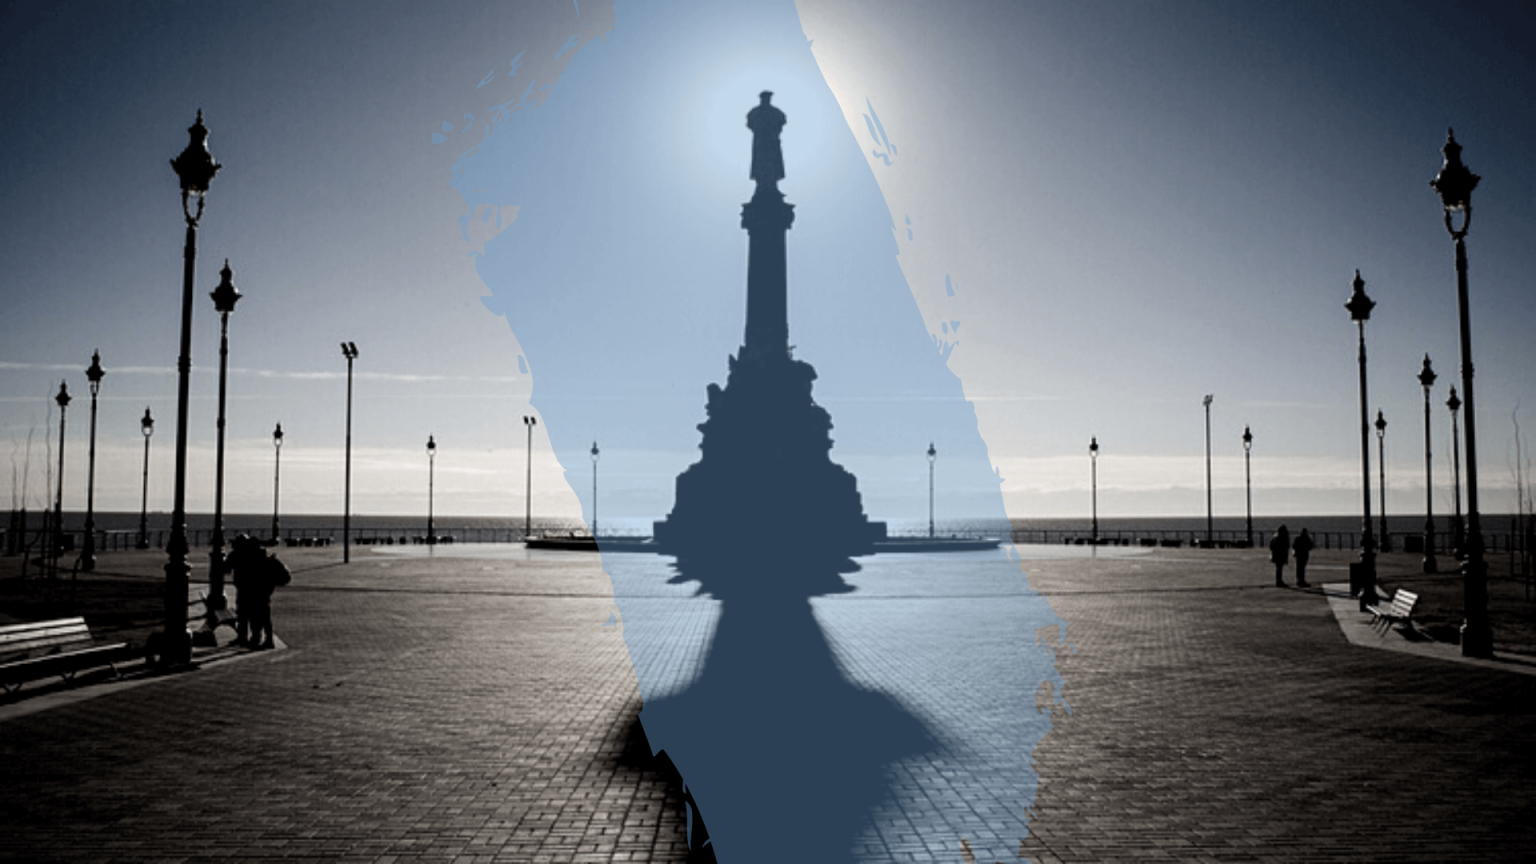 Statue of Christopher Columbus stands in its new location at the Río de la Plata, looking out towards the ocean - in the direction of Spain. The image has been edited with a translucent splash of blue paint across the statue.